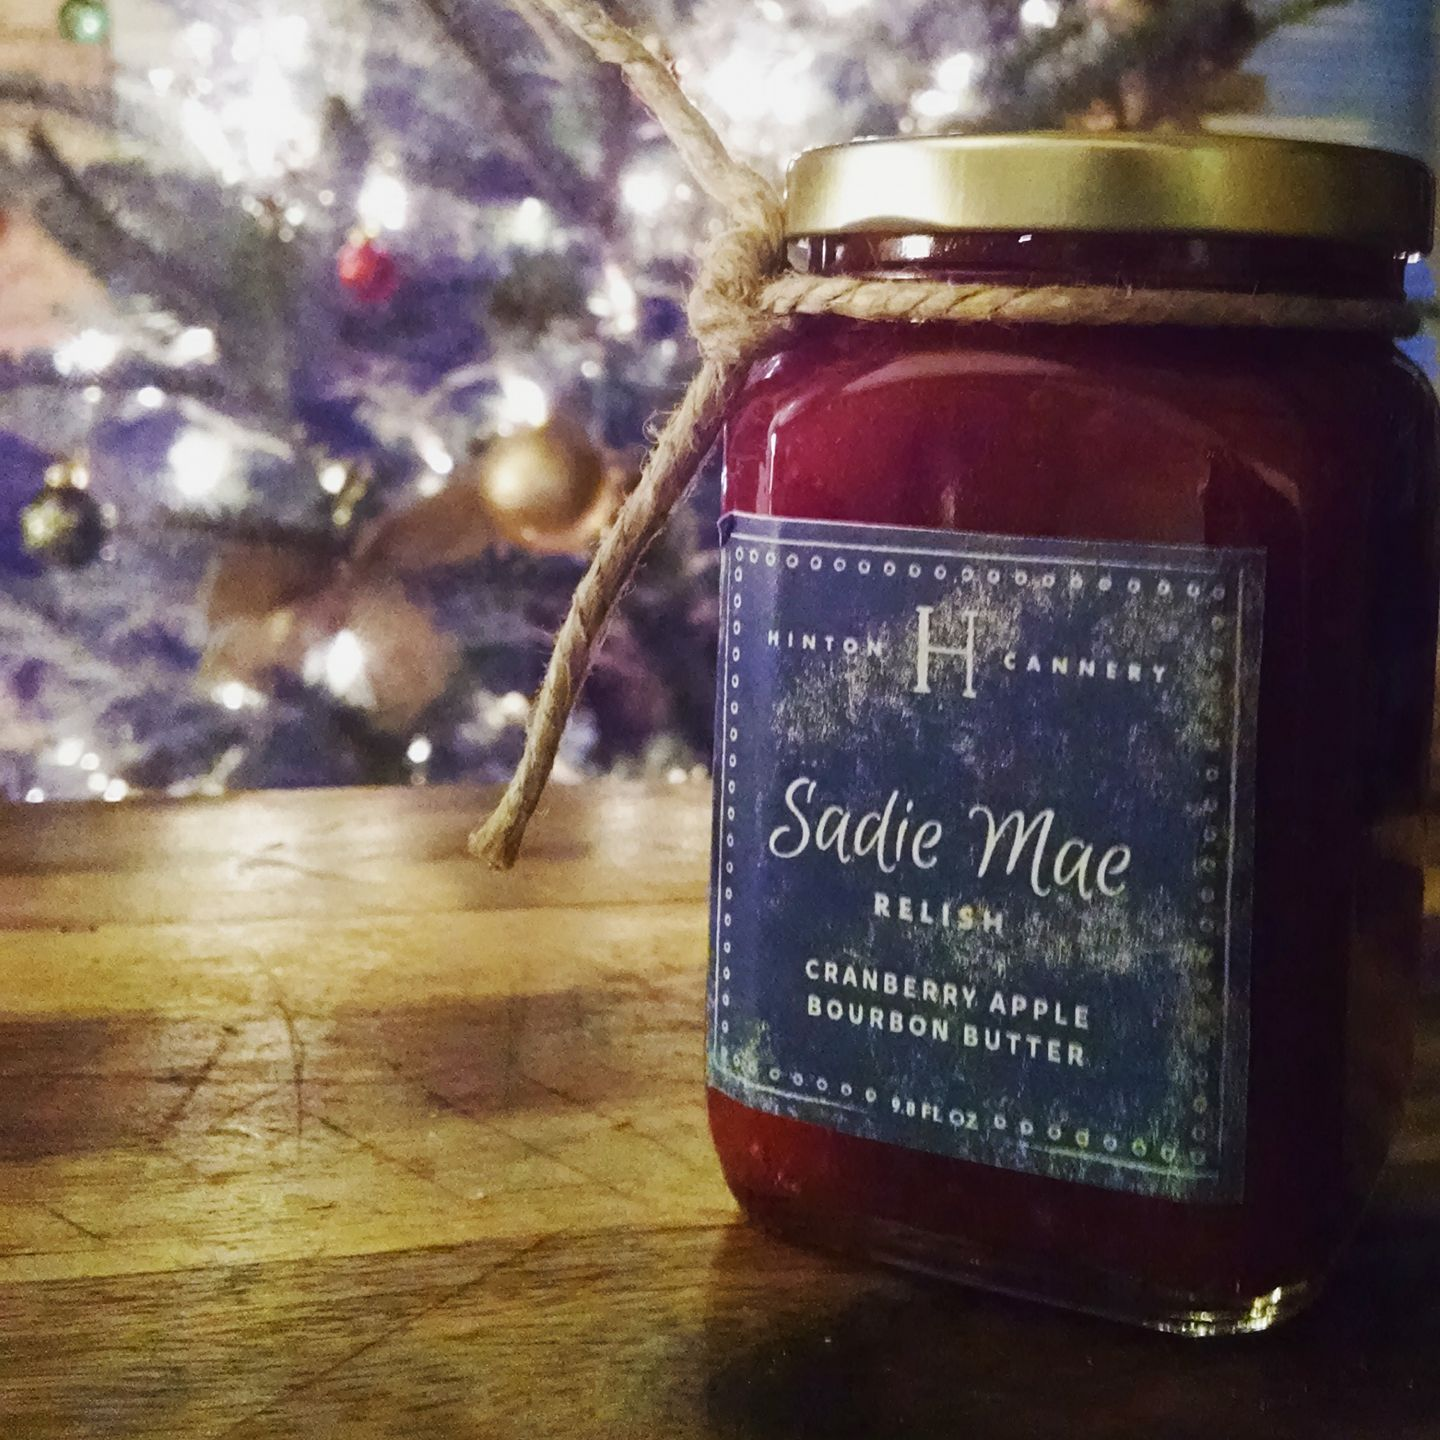 Cranberry Apple Bourbon Butter made by Hinton Cannery